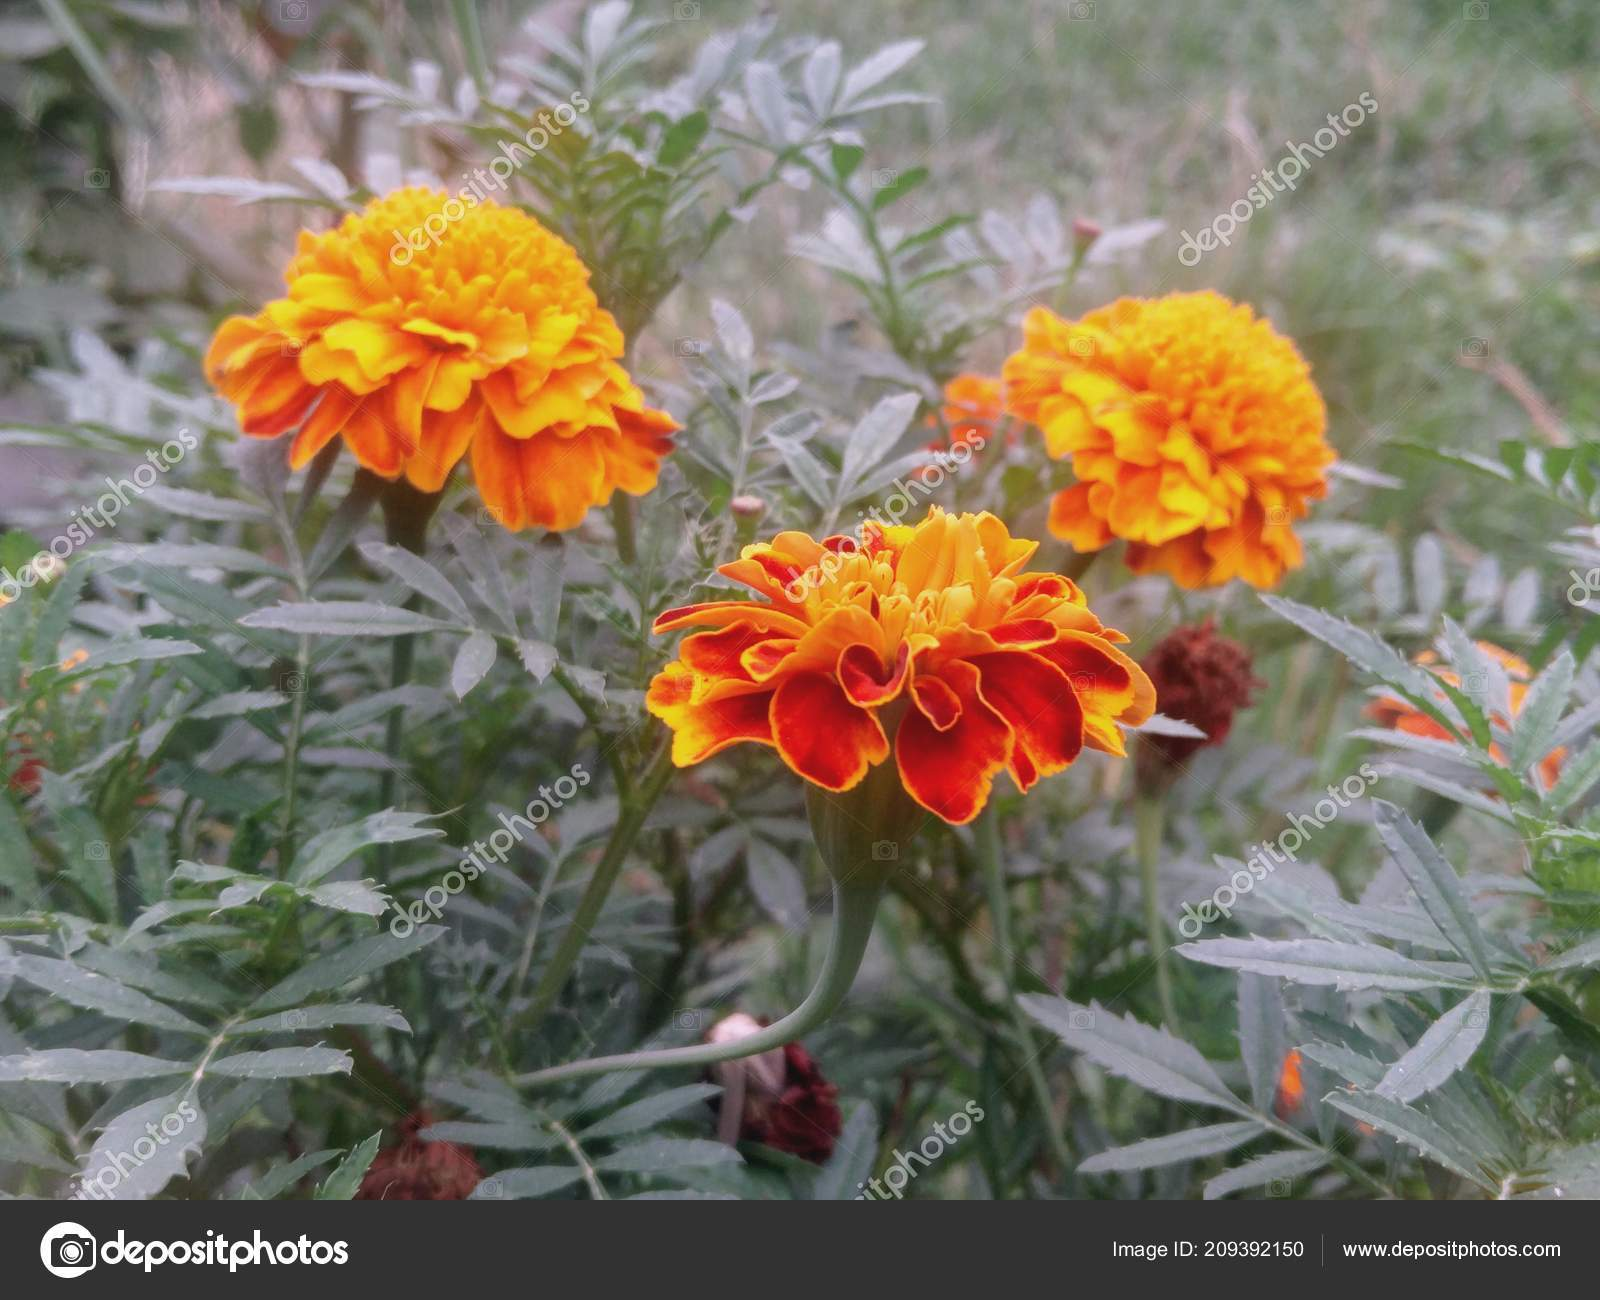 depositphotos stock photo summer garden flowers colorful flower